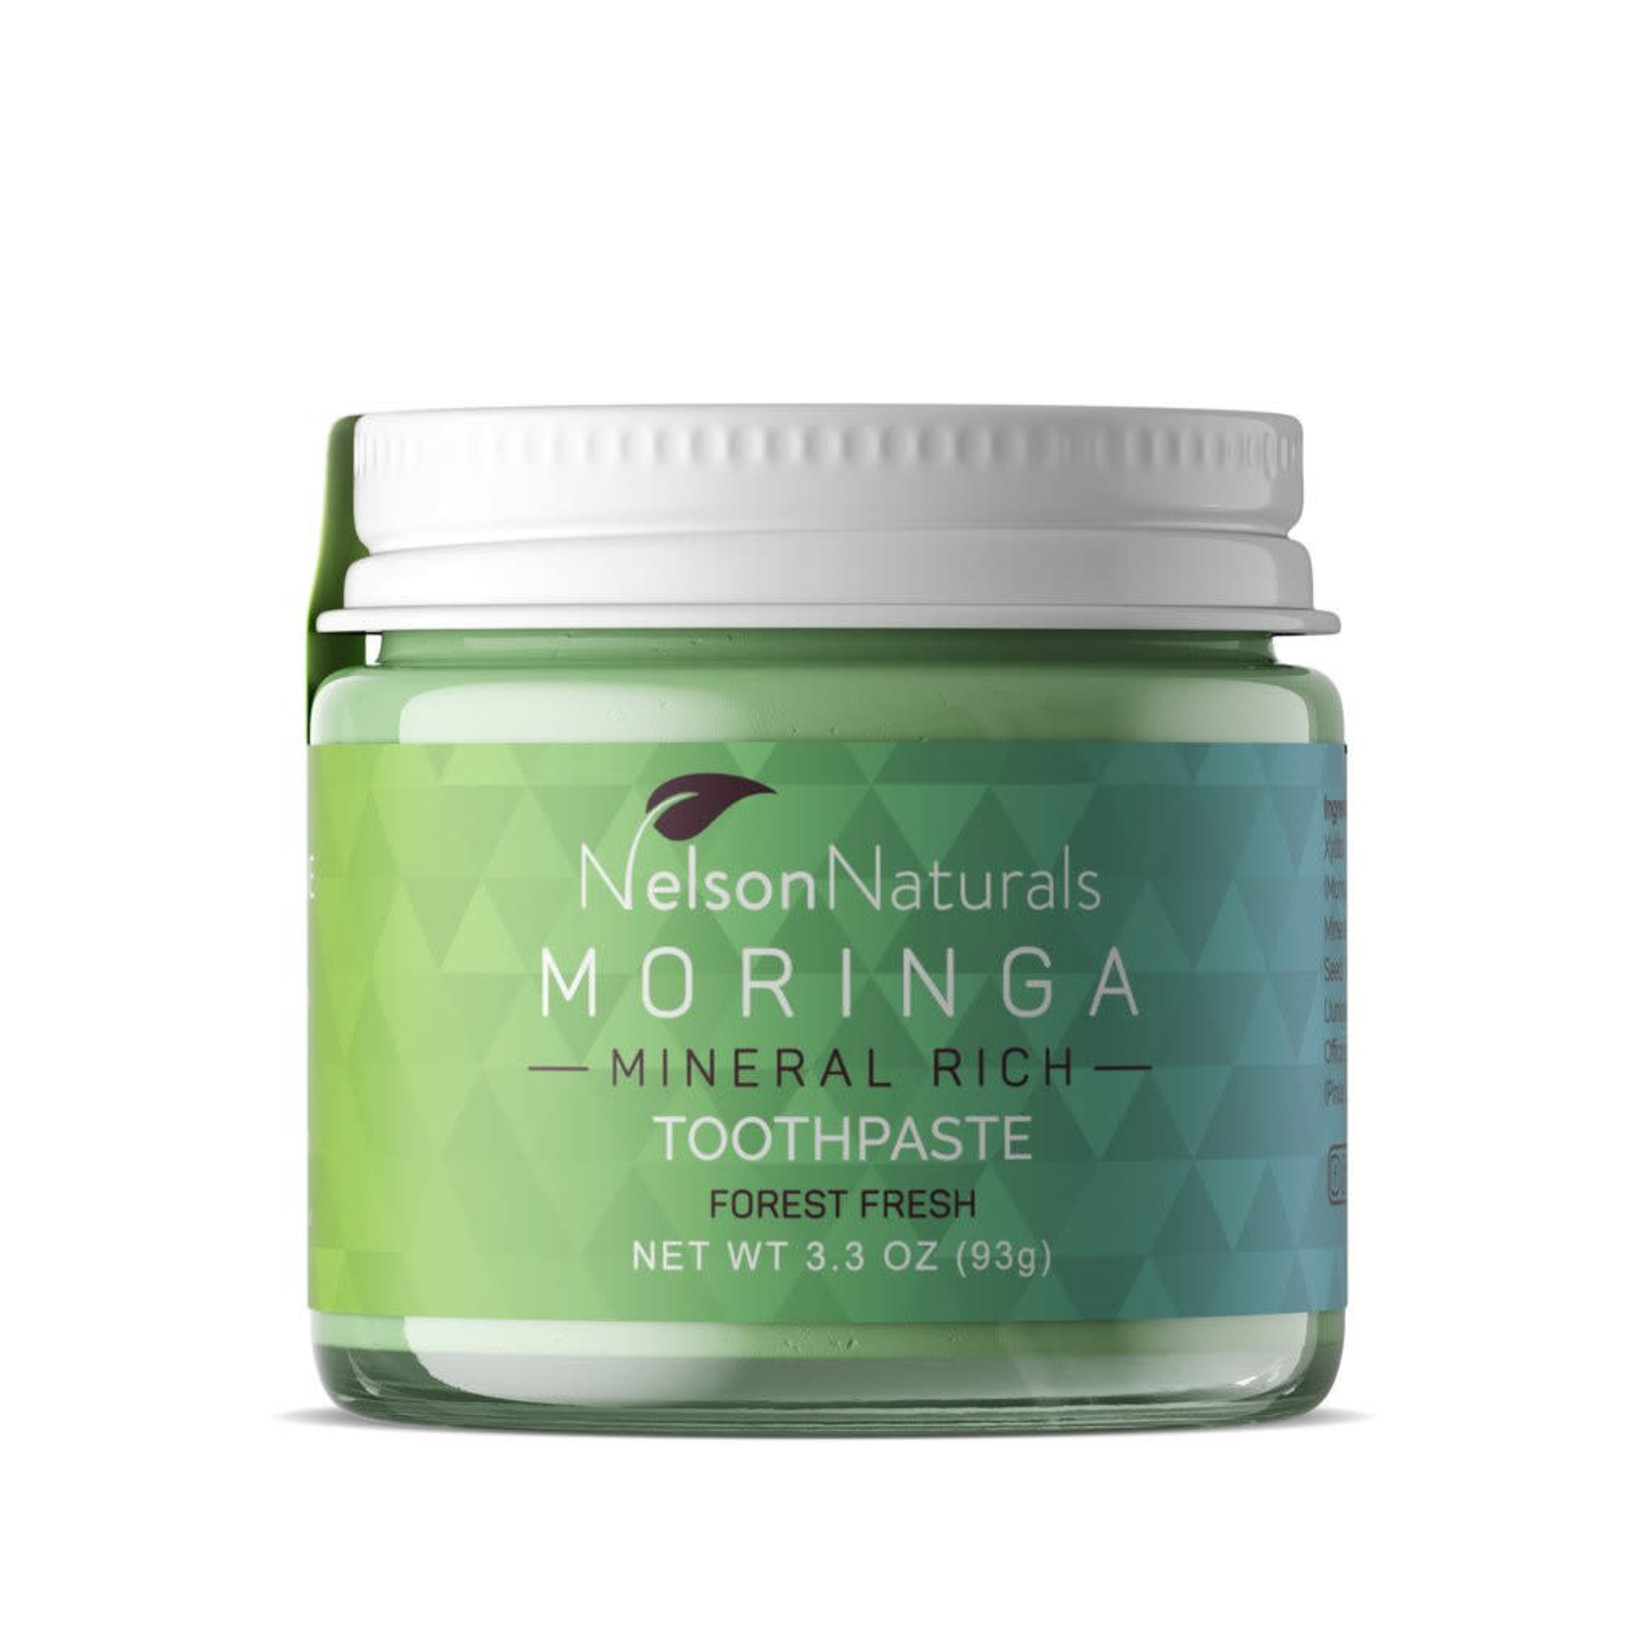 NELSON NATURALS TOOTHPASTE JAR - MORINGA MINERAL RICH